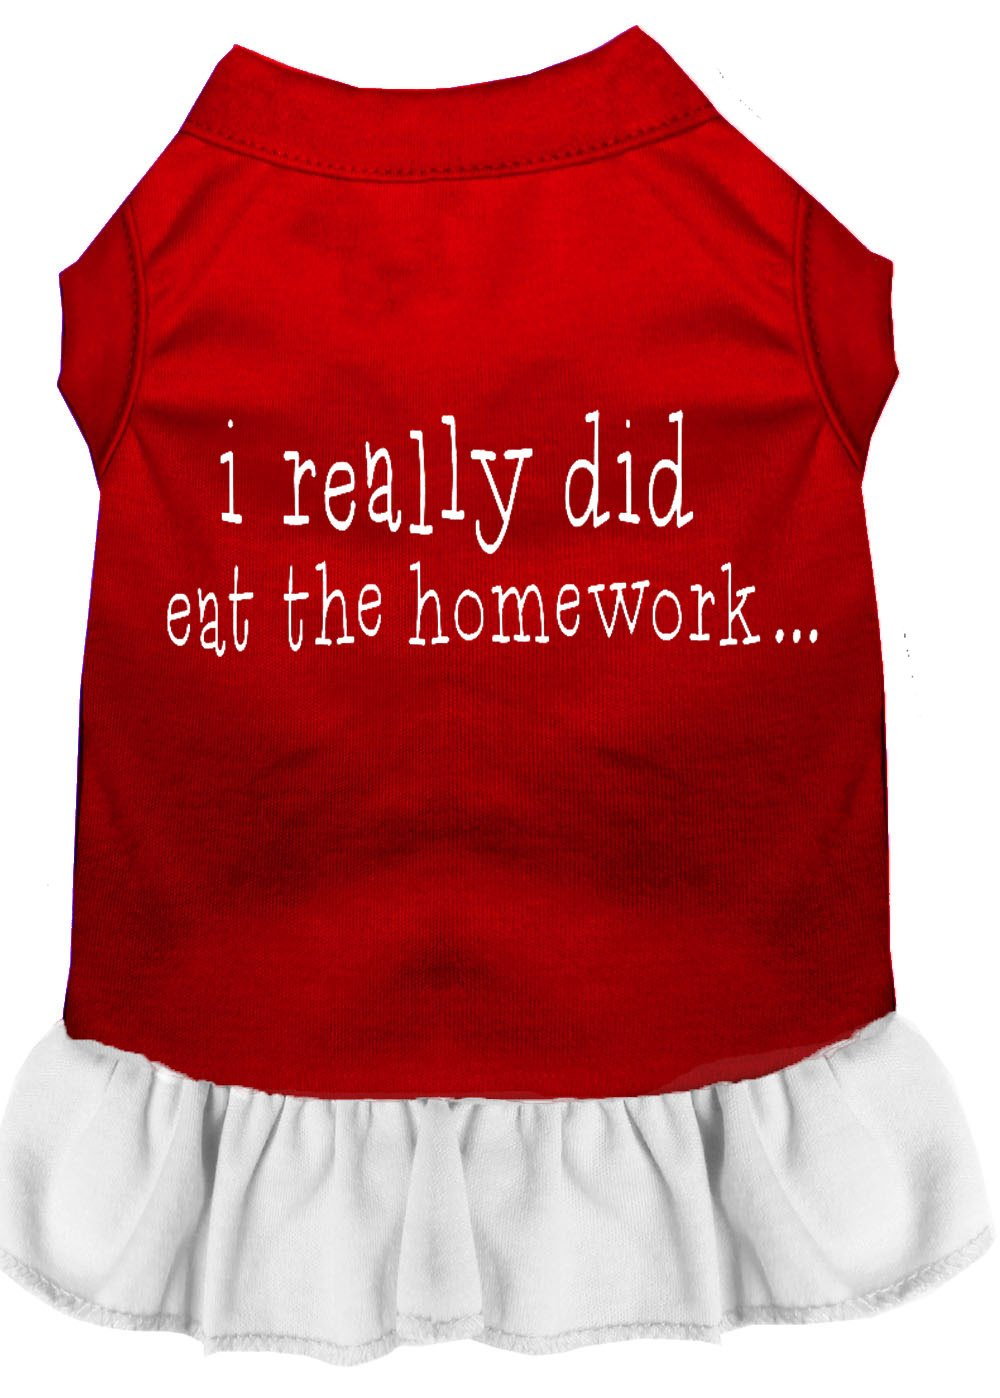 Mirage Pet Products 57-47 XXLRDWT White I Really did eat The Homework Screen Print Dress Red with, XX-Large